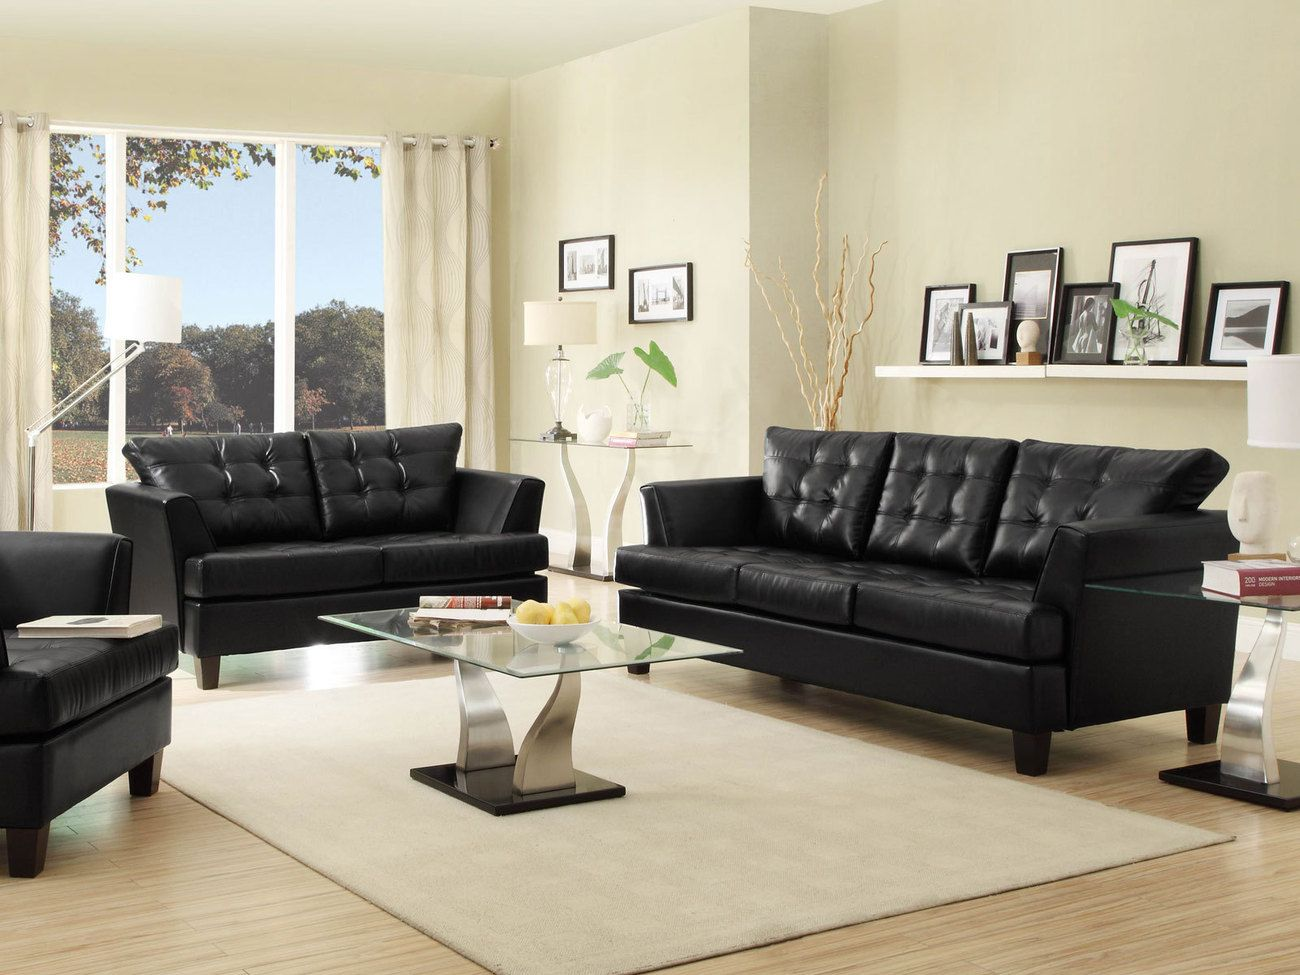 Iris Modern Black Faux Leather Sofa Couch Loveseat Set Living